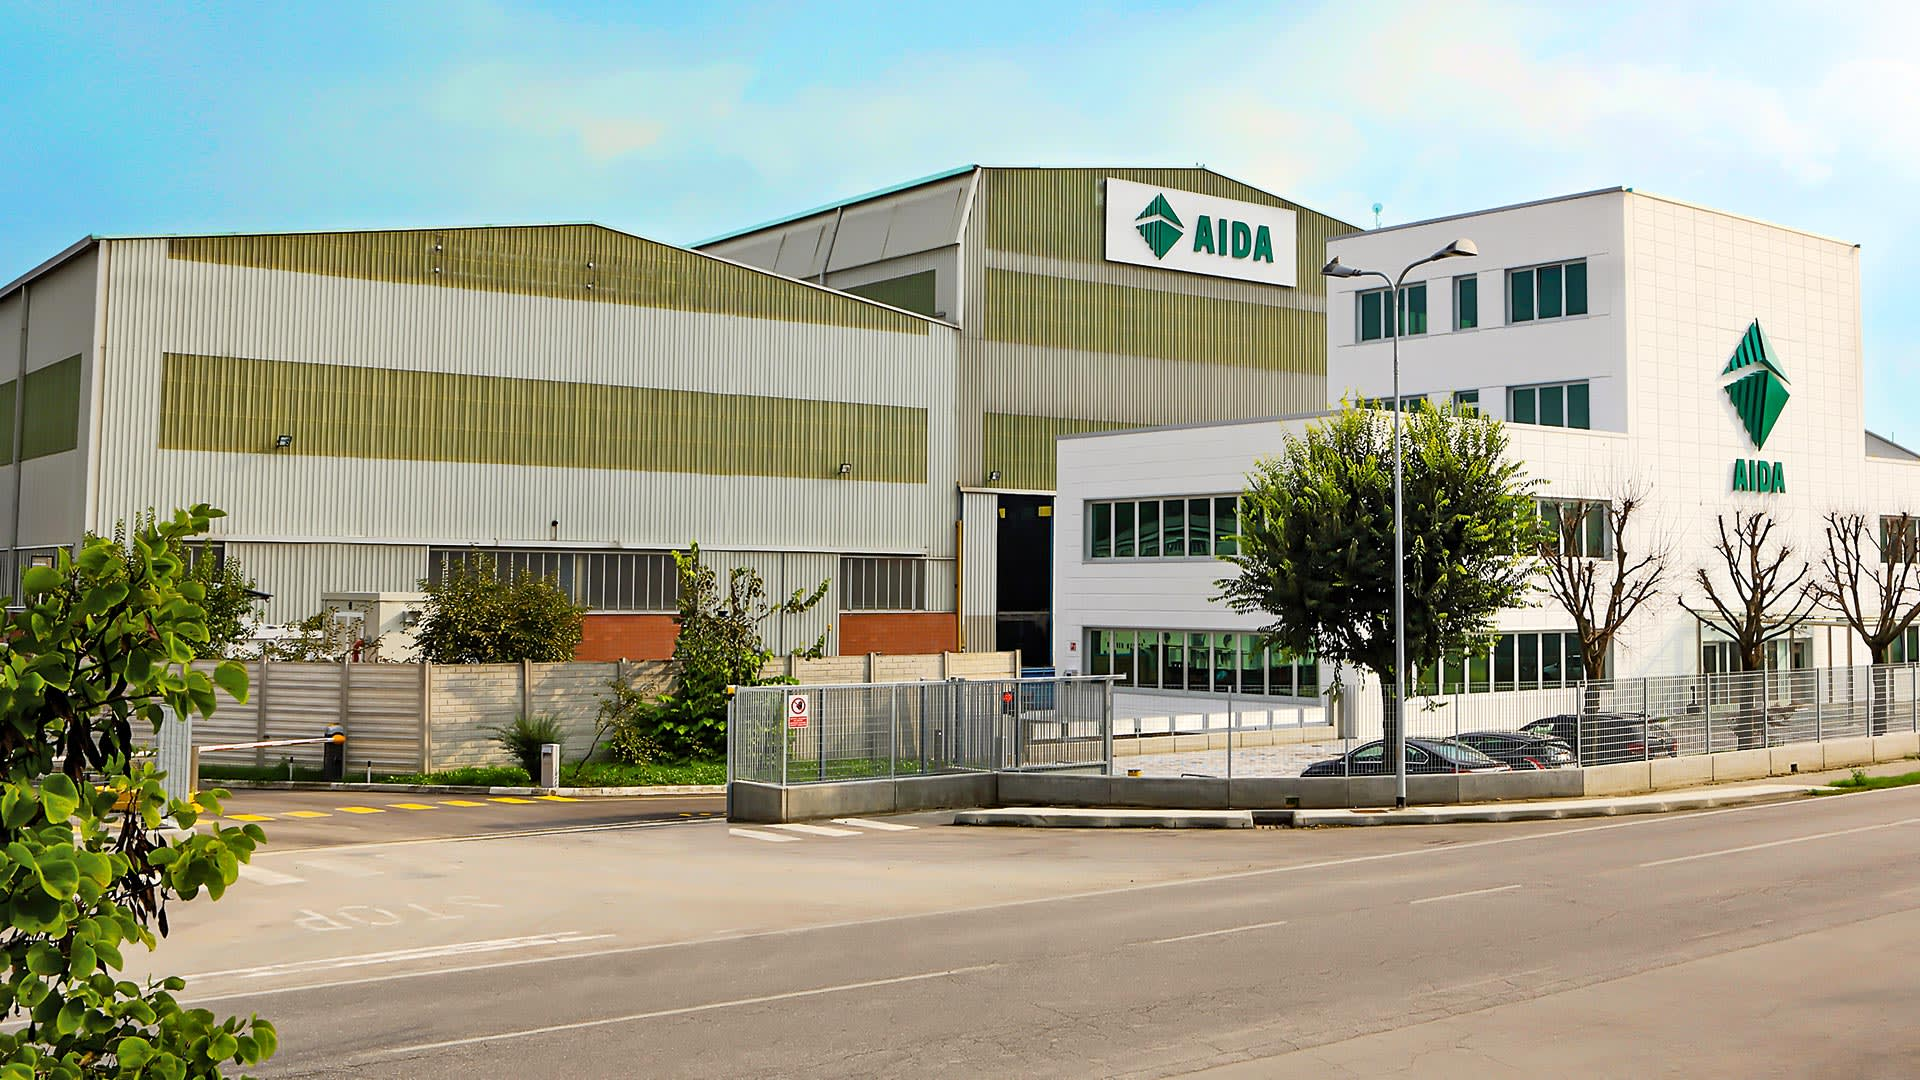 AIDA Europe Stamping Press Manufacturing in Europe